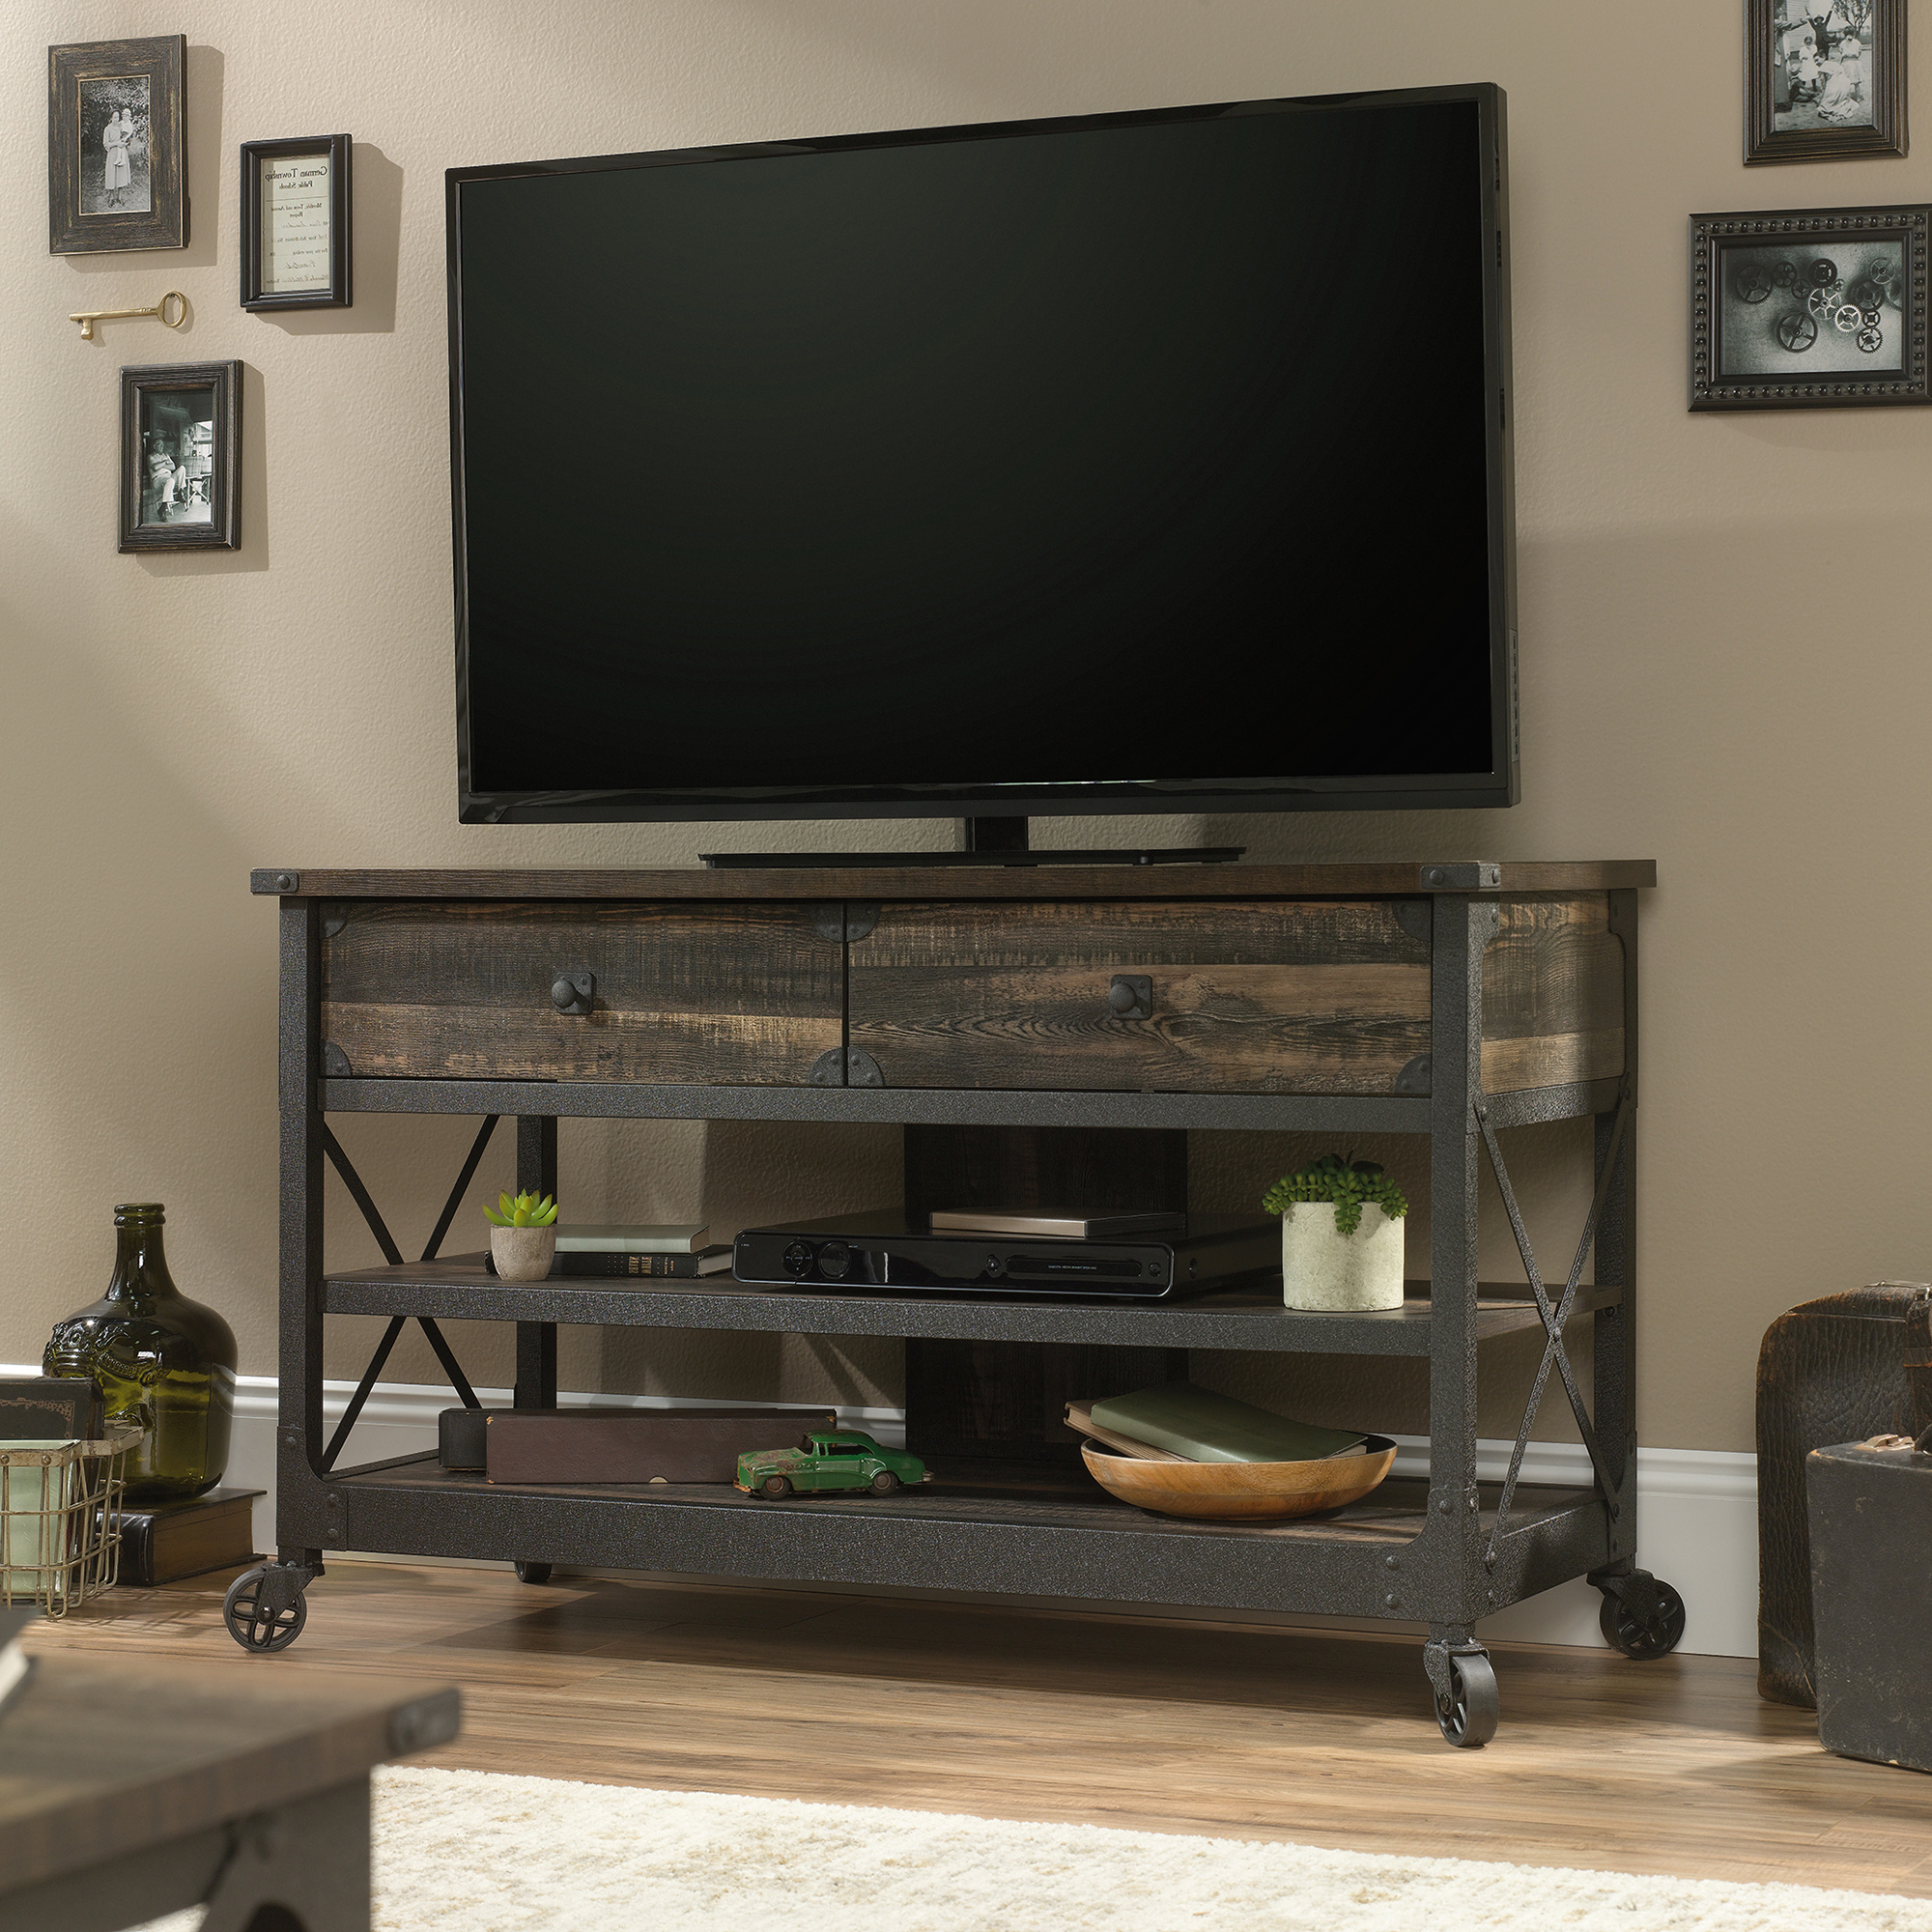 Industrial Tv Stands For Best And Newest Steel River Industrial Tv Stand Carbon Oak (423913) – Sauder (View 18 of 20)